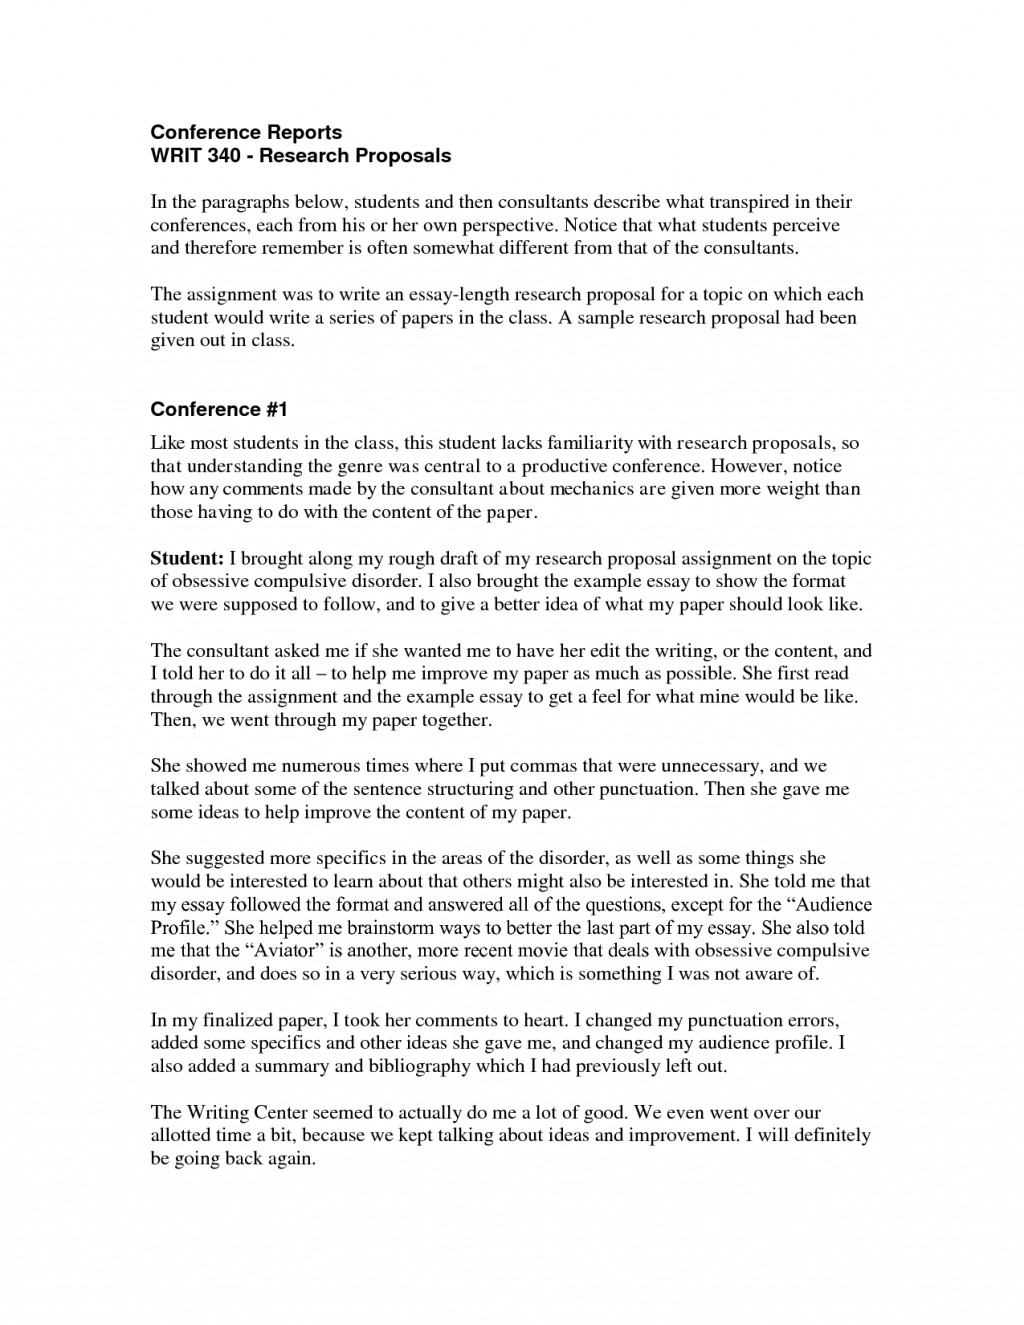 002 Research Paperpa Proposal Sample 542914 How To Write Amazing A Paper Apa Large